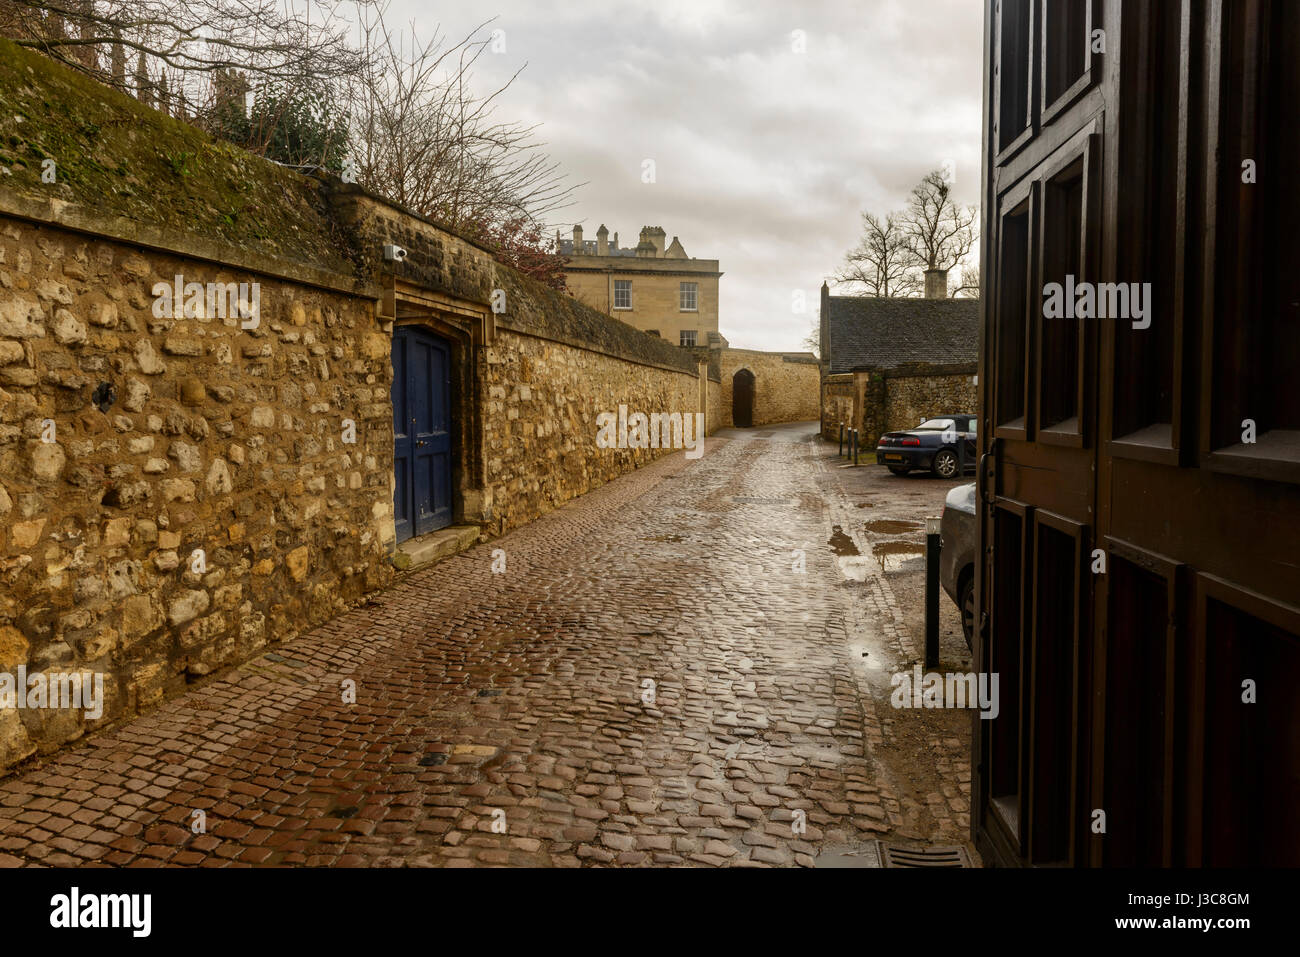 Old cobbled street - Stock Image